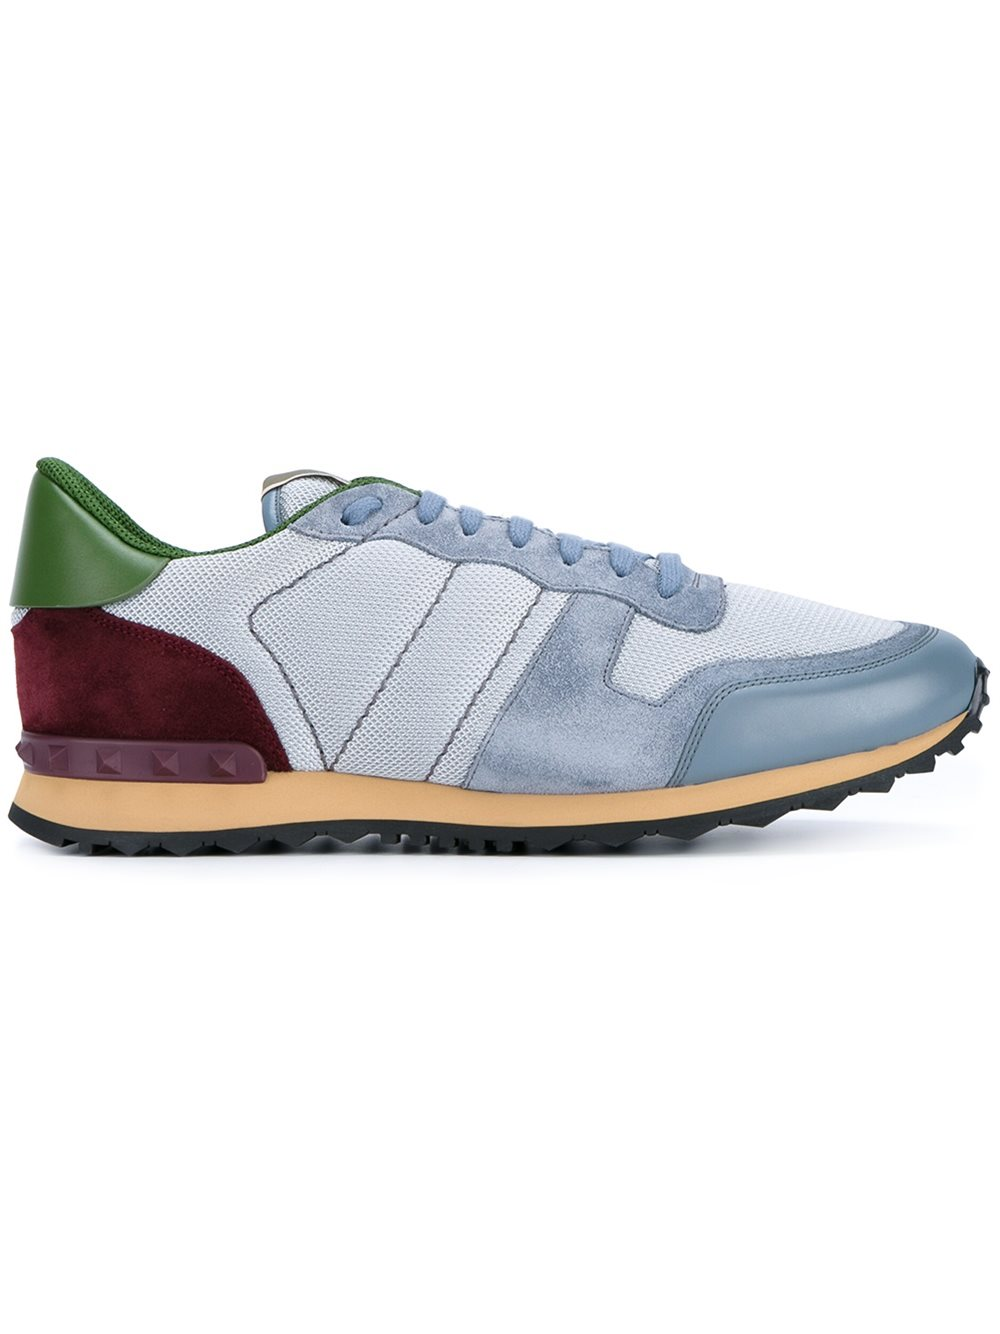 Sneakers valentino homme outlet